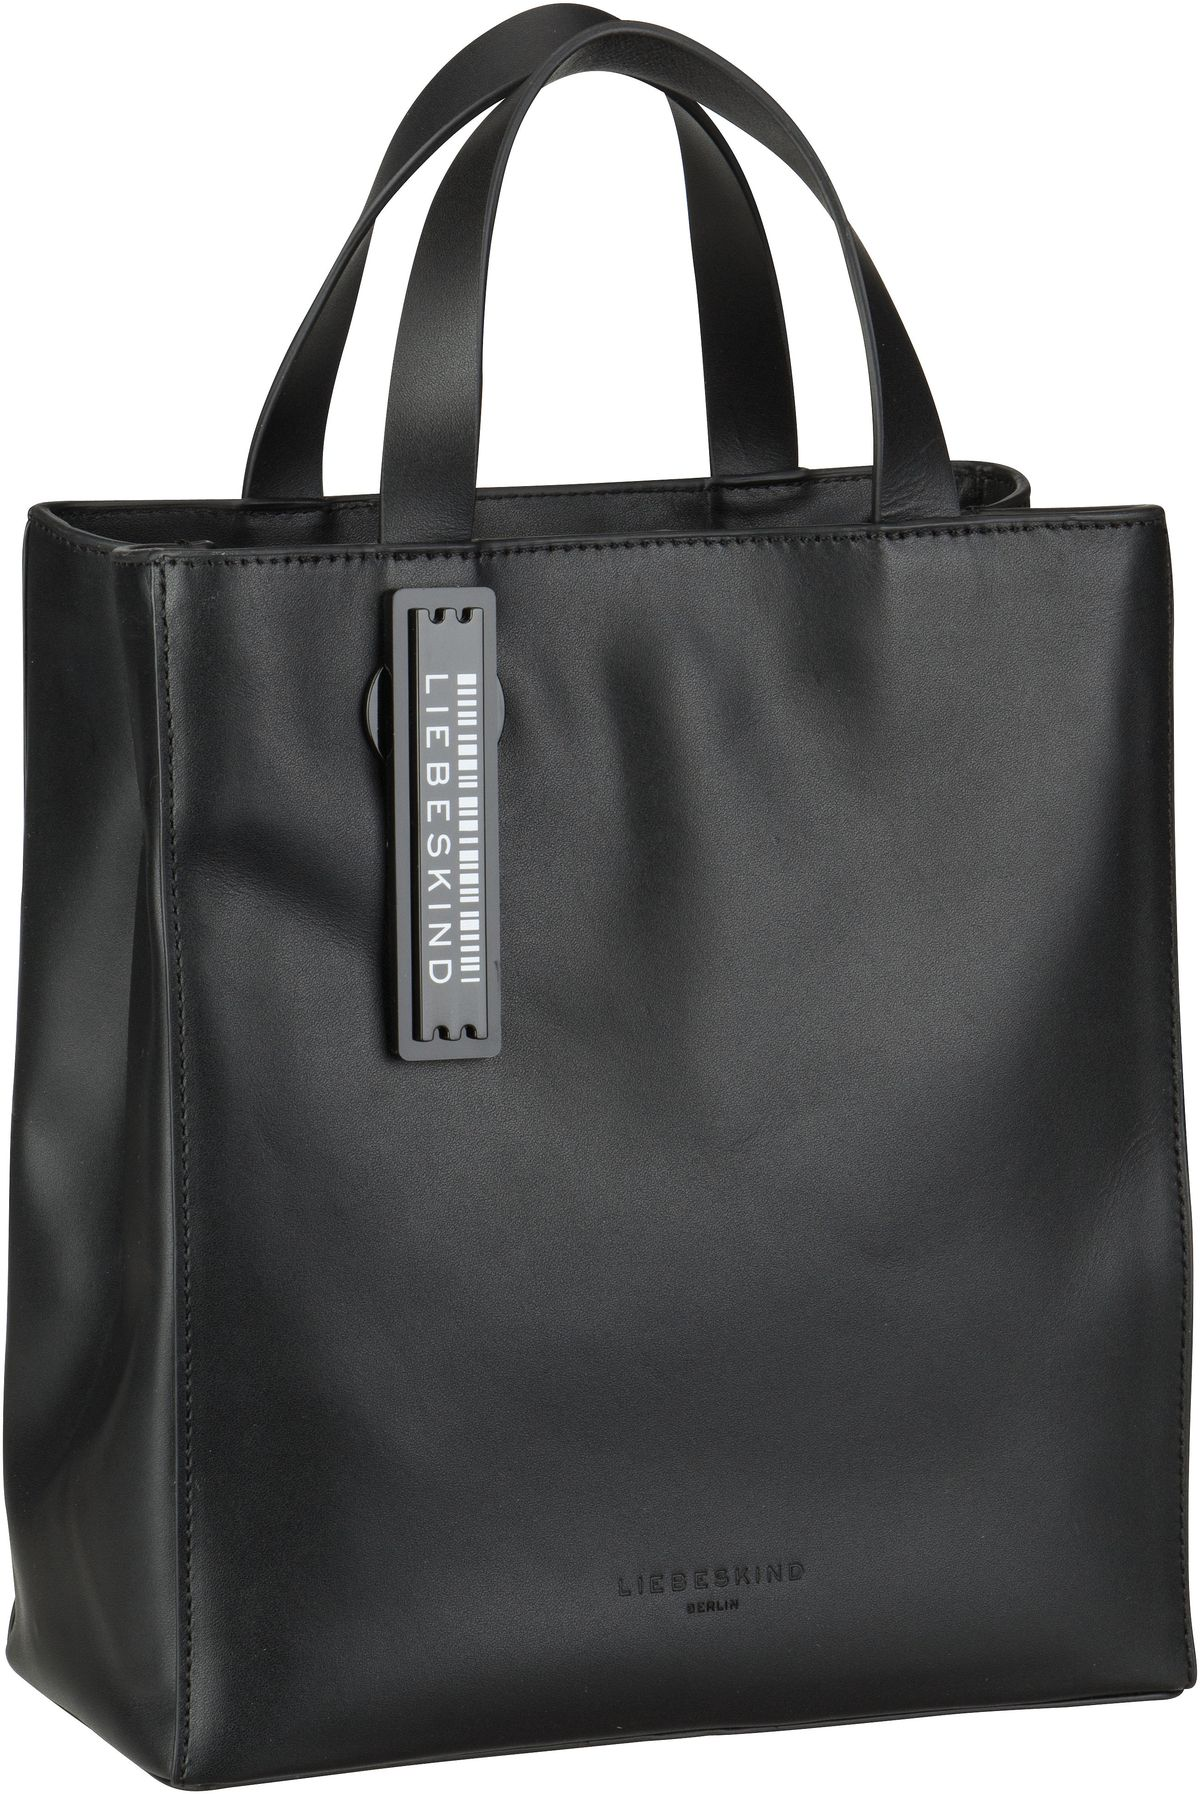 Berlin Handtasche Paper Bag Tote S Black